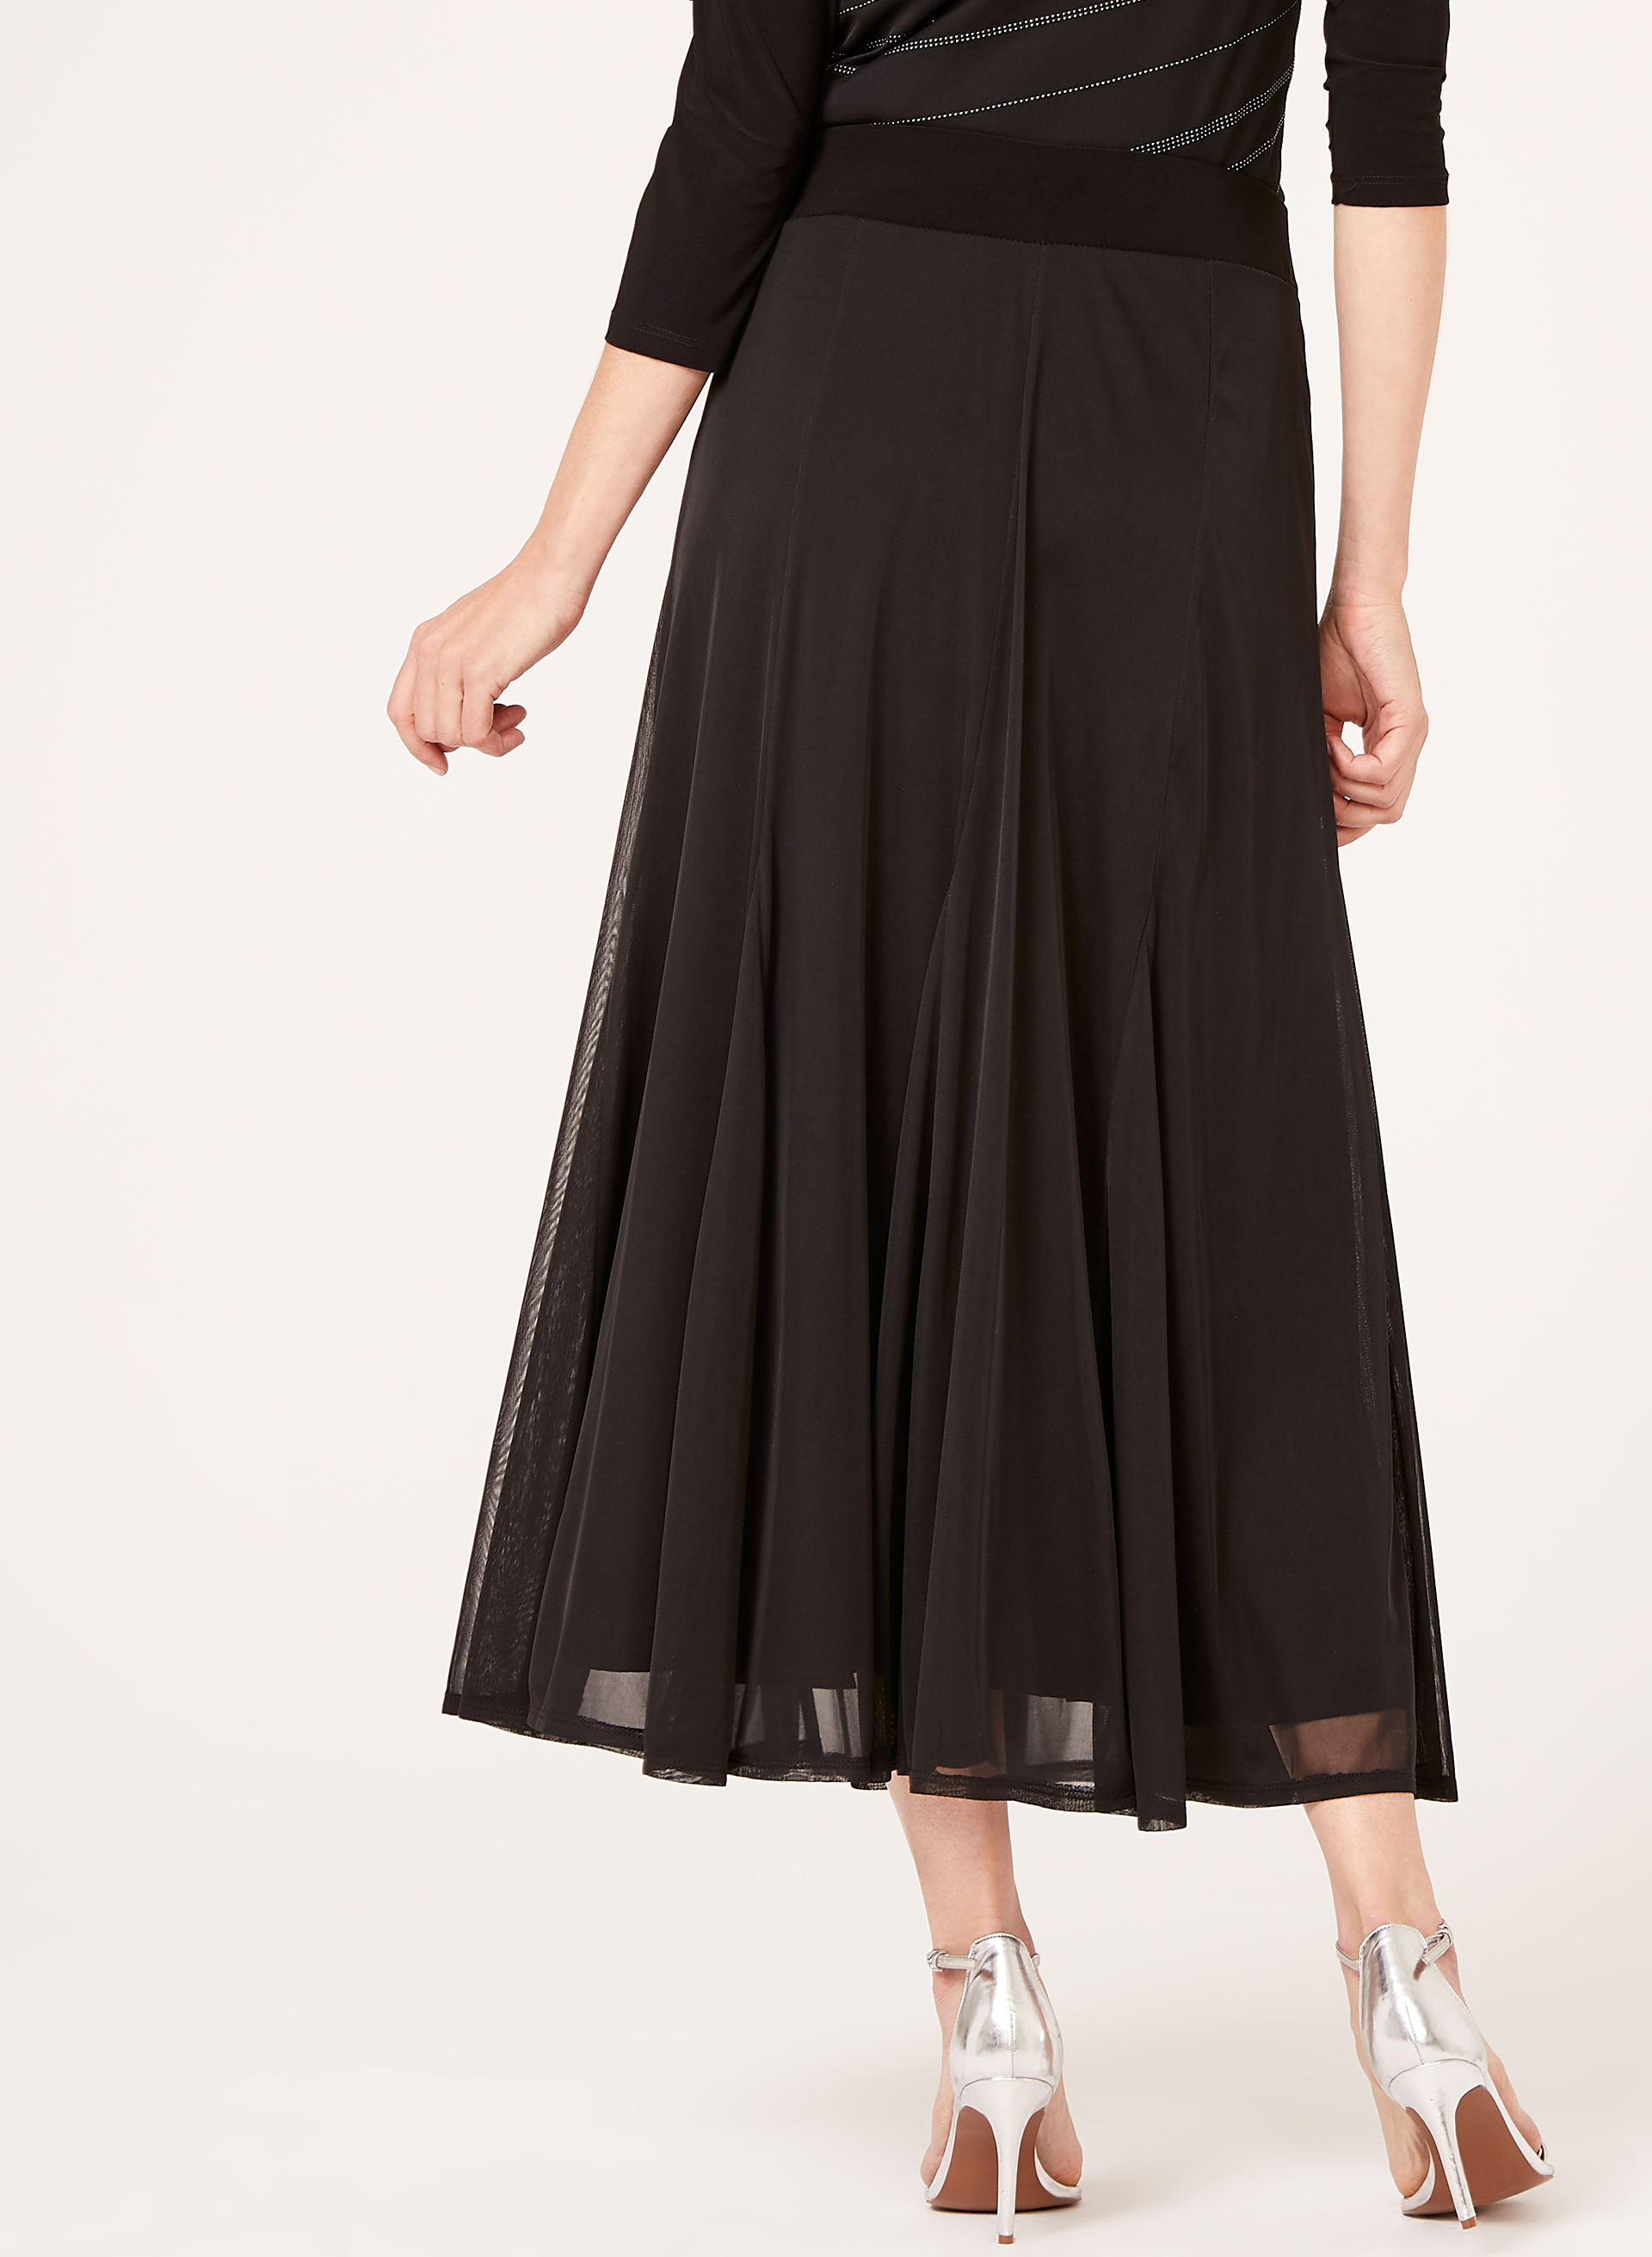 Skirts - Find a variety of fashionable skirts at Le Chateau! Shop the latest trends in pencil skirts, mini skirts, maxi skirts & more, all at great prices.